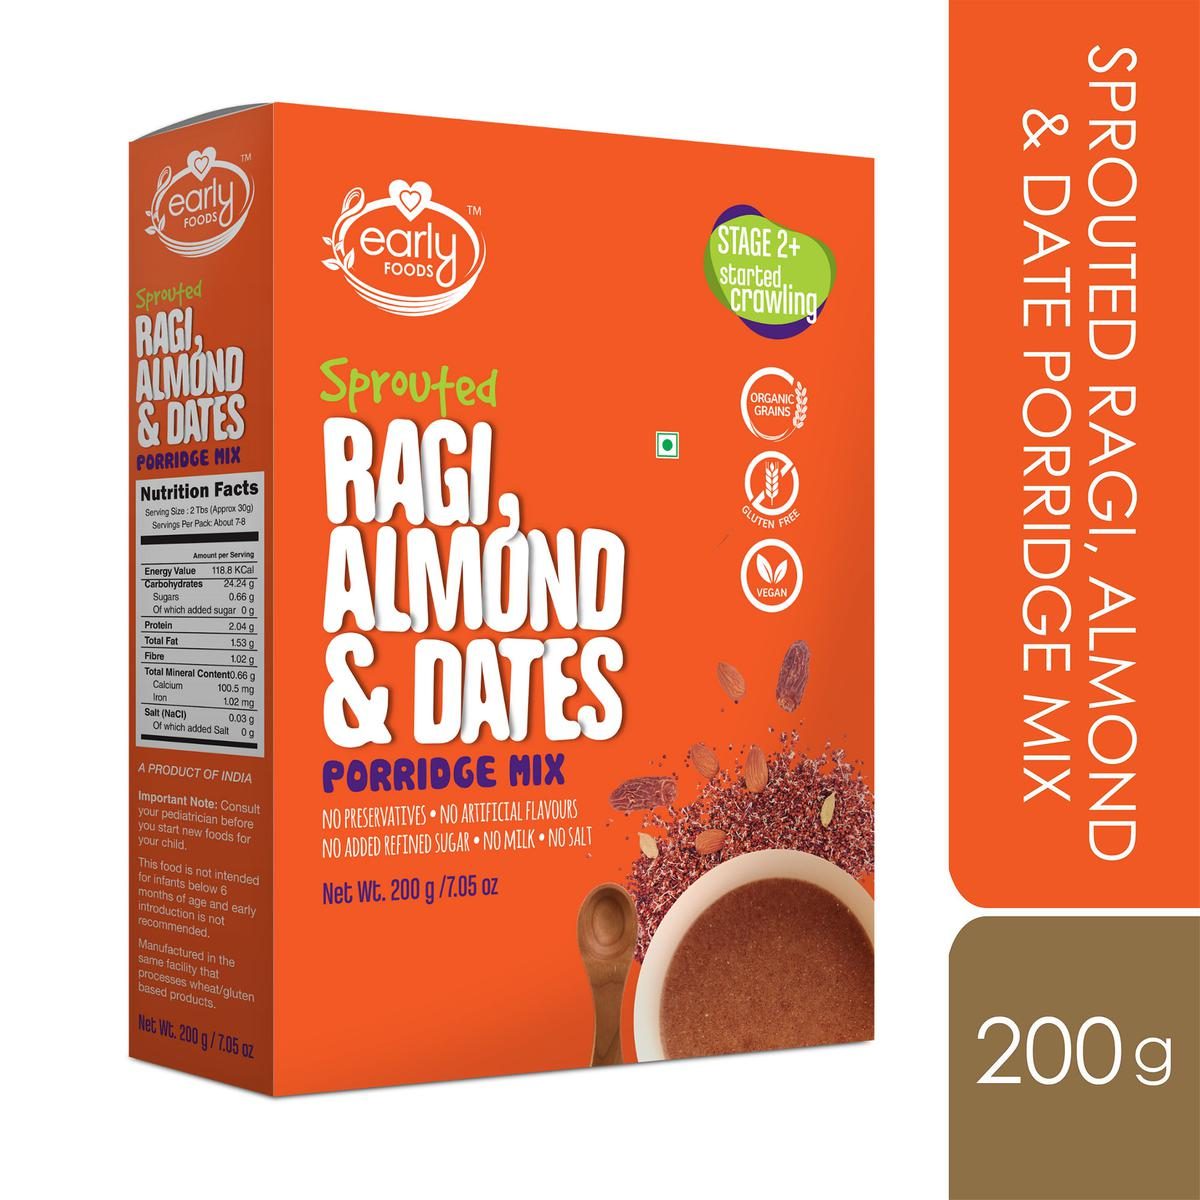 Early Foods - Sprouted Ragi - Almond - Date Porridge Mix 200g